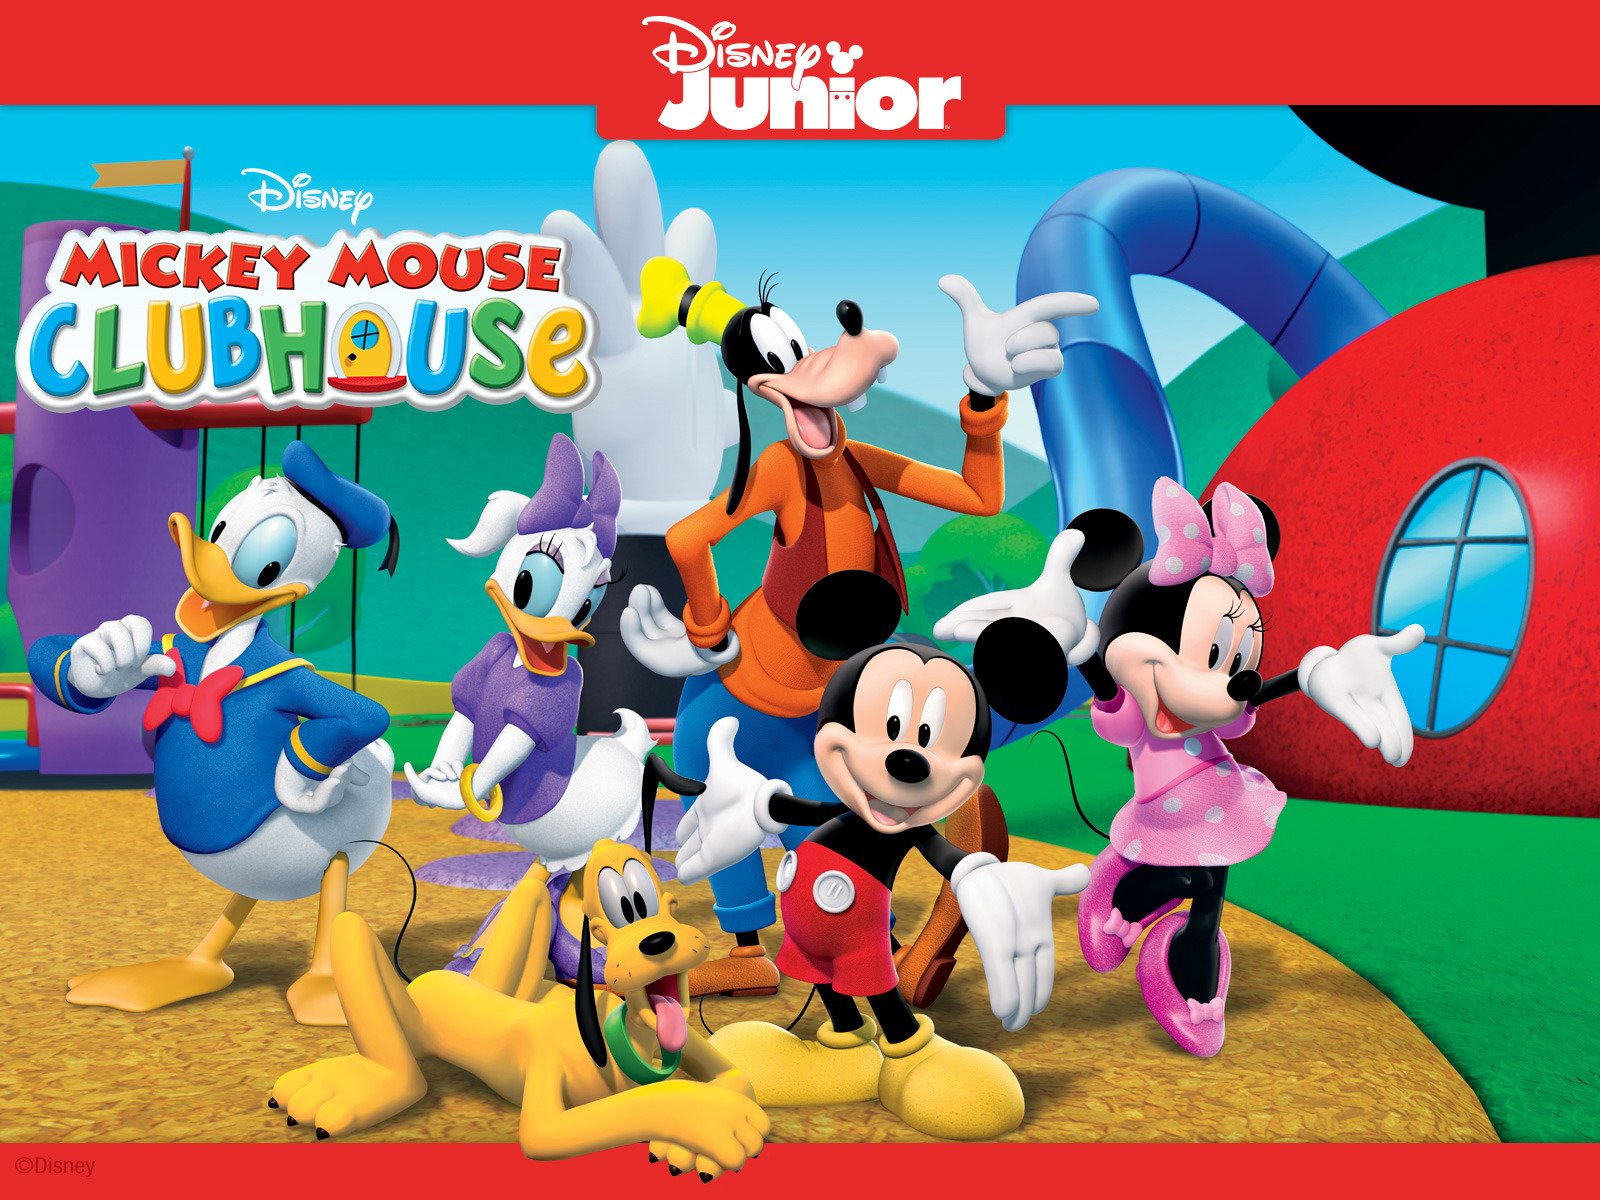 mickey mouse clubhouse people 1600x1200 wallpaper teahub io mickey mouse clubhouse people